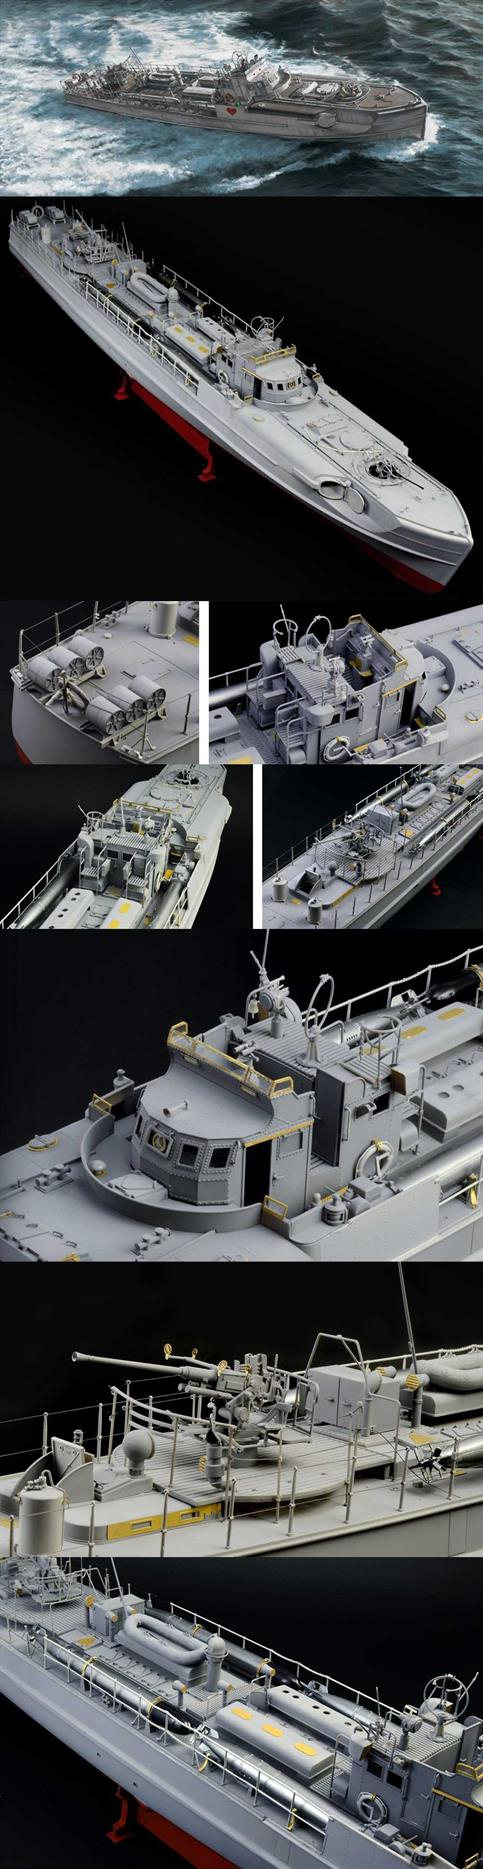 5620 is a new Italeri  1:35 scale model kit dedicated to the Type S-38 Schnellboot, the famous fast attack craft used by the German Navy during the Second World War. T